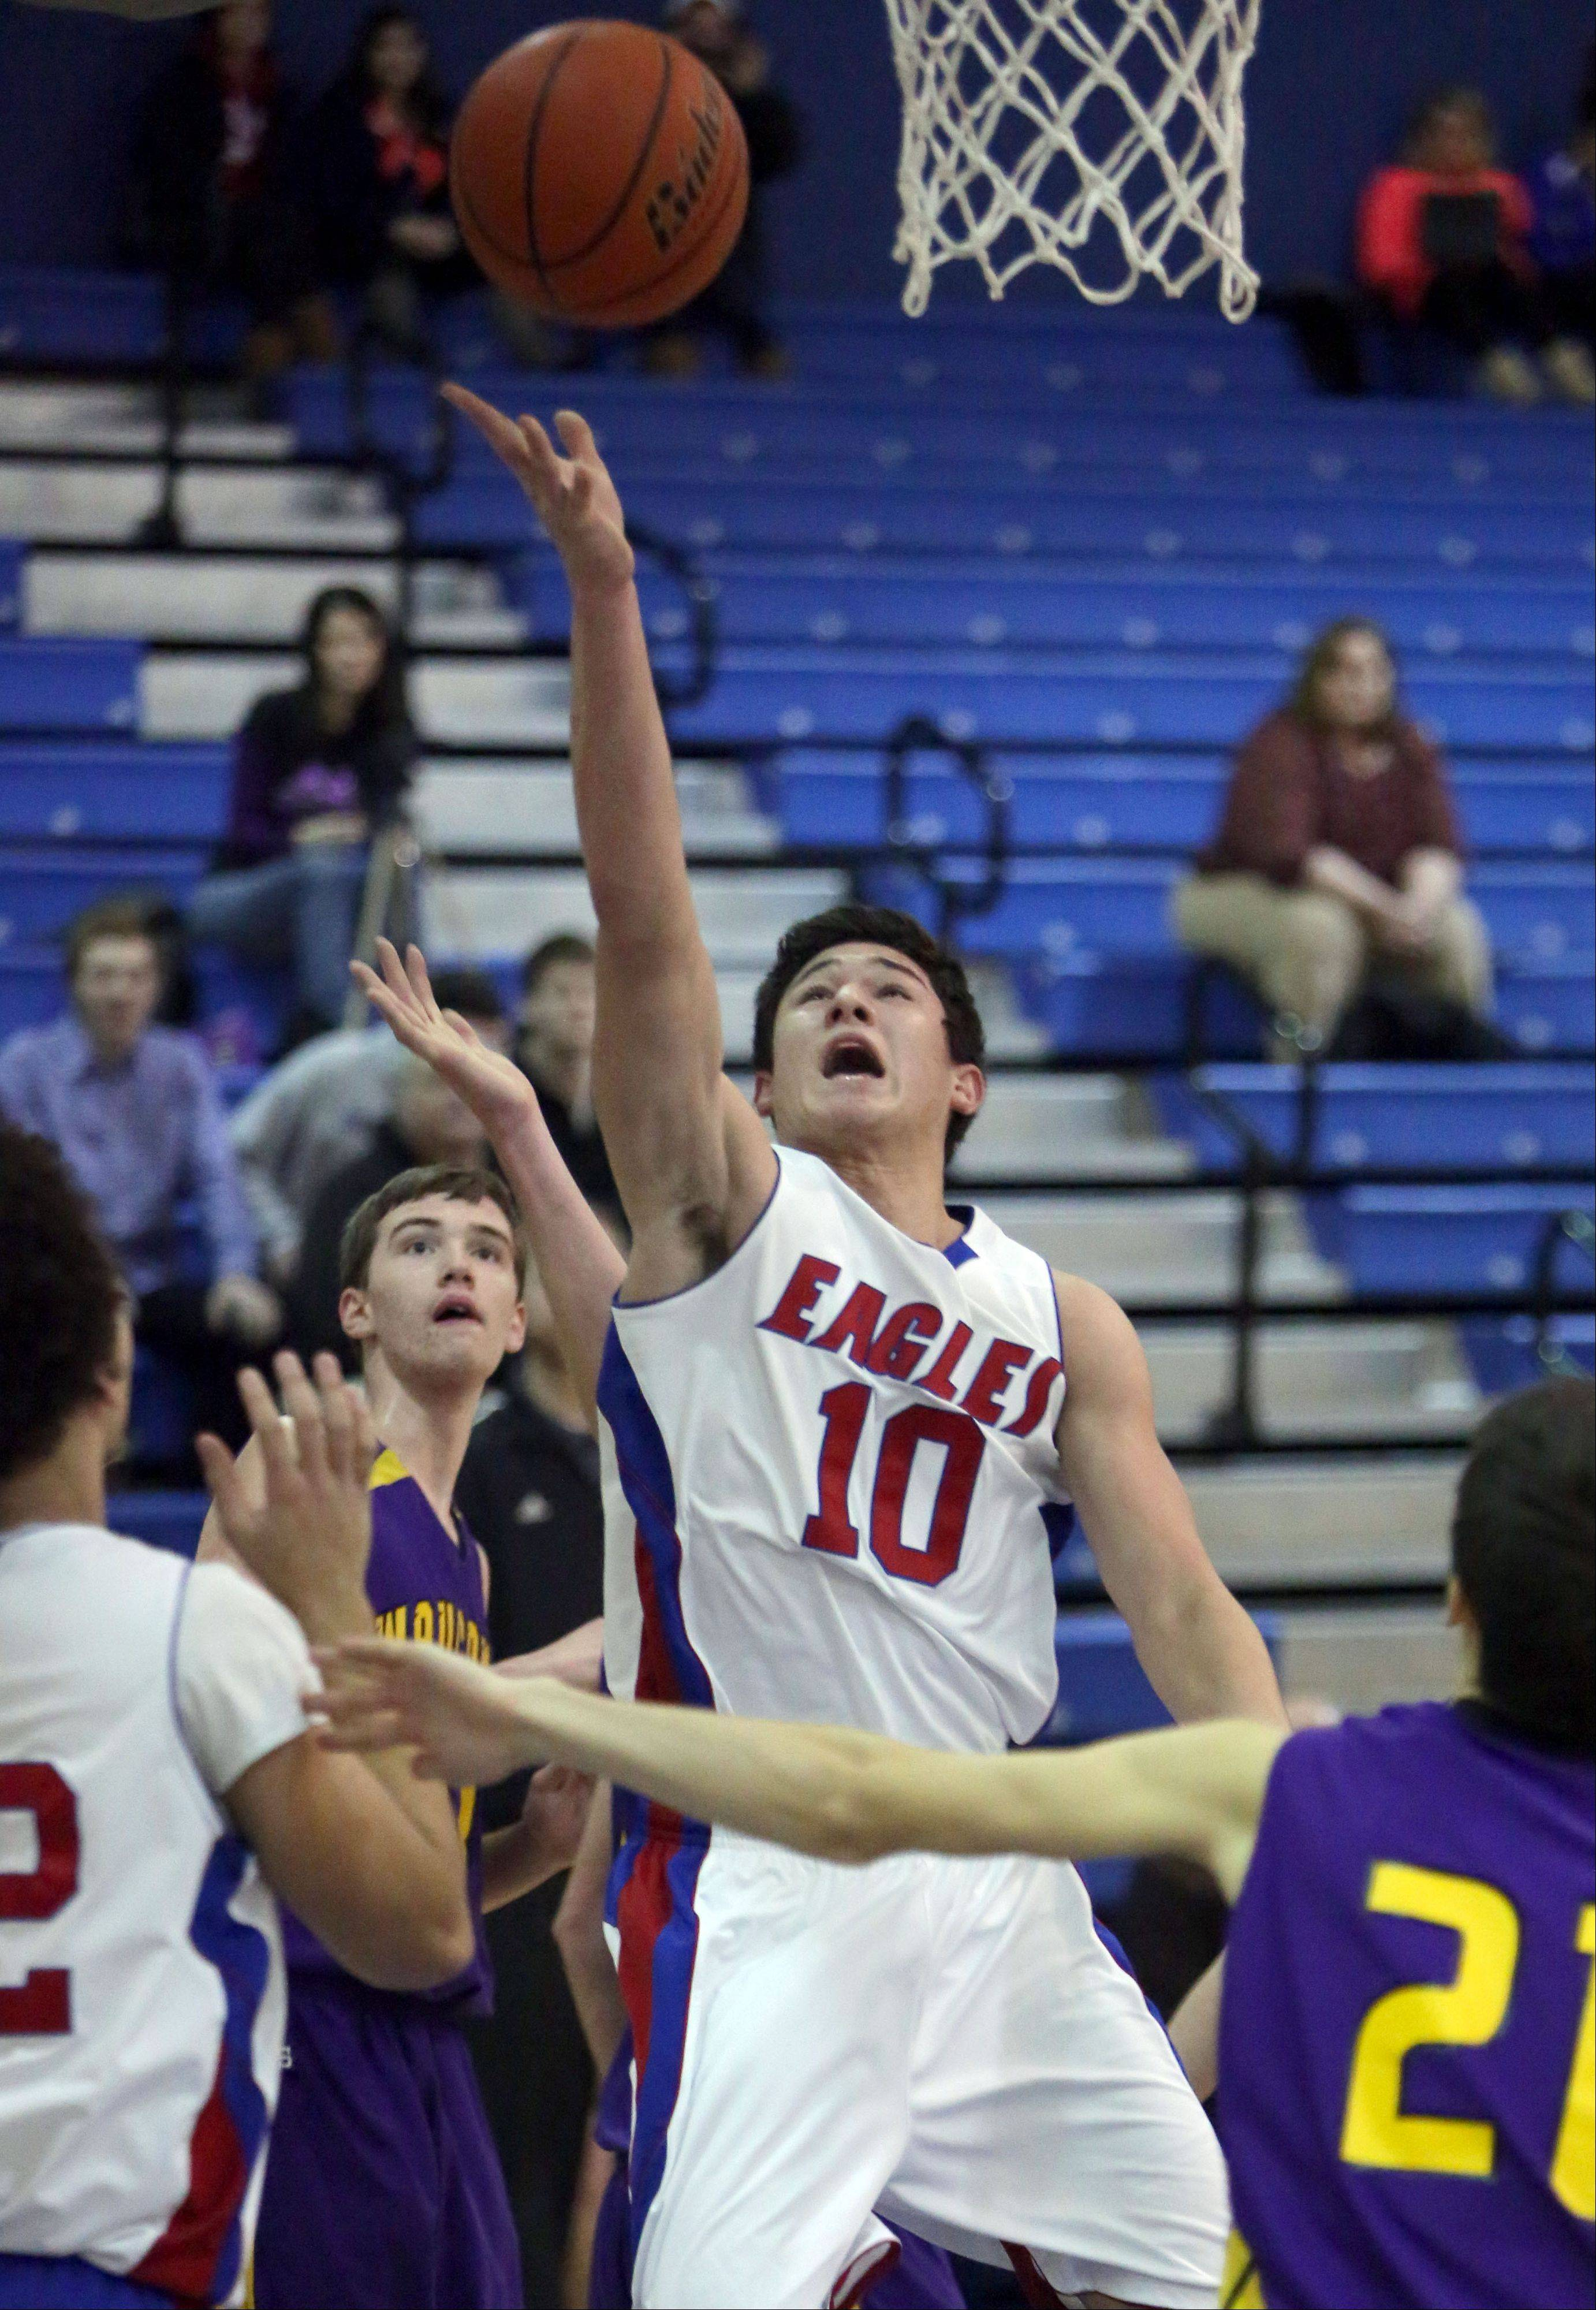 Lakes shoots past Wauconda